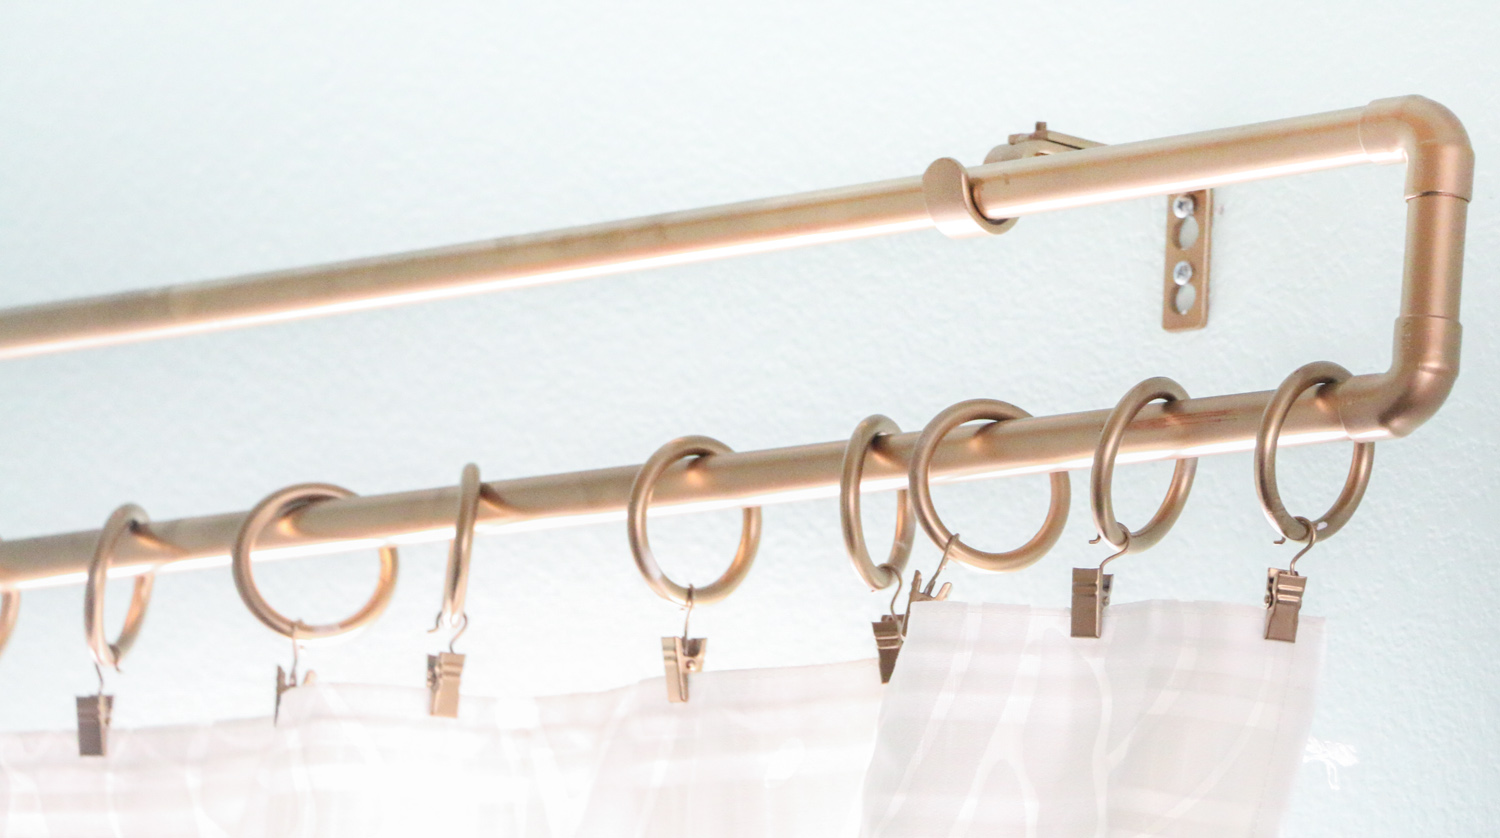 Copper Curtain Rod A Kailo Chic Life Diy It A Gold Pipe Curtain Rod